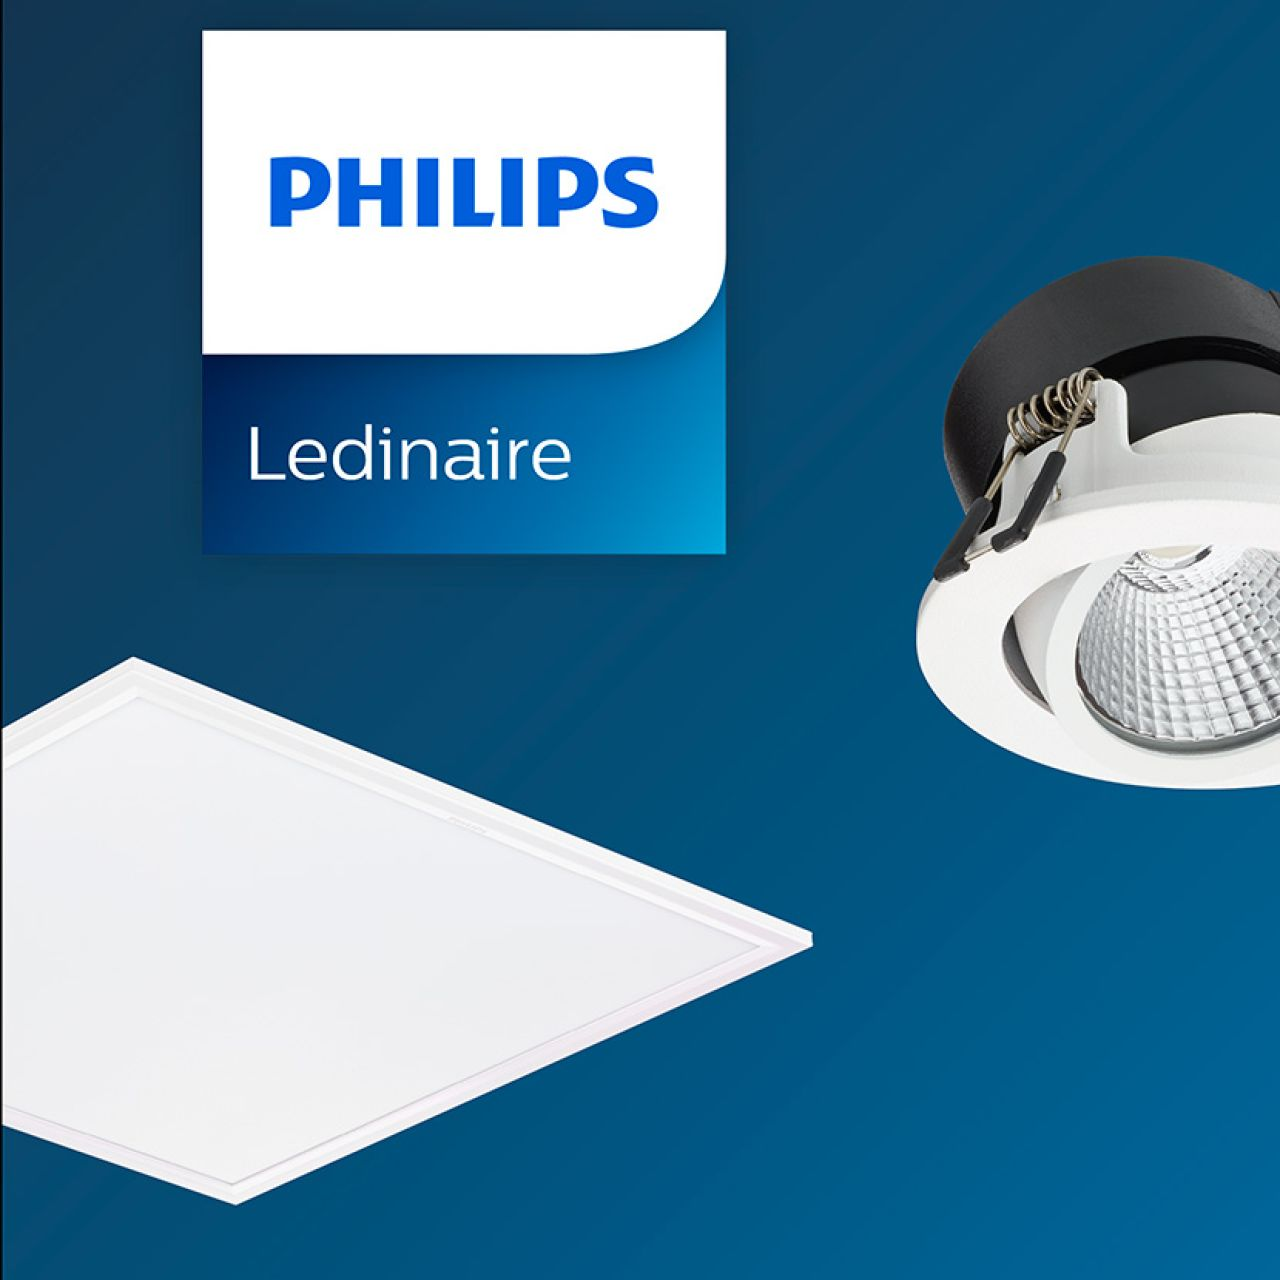 Philips Ledinaire